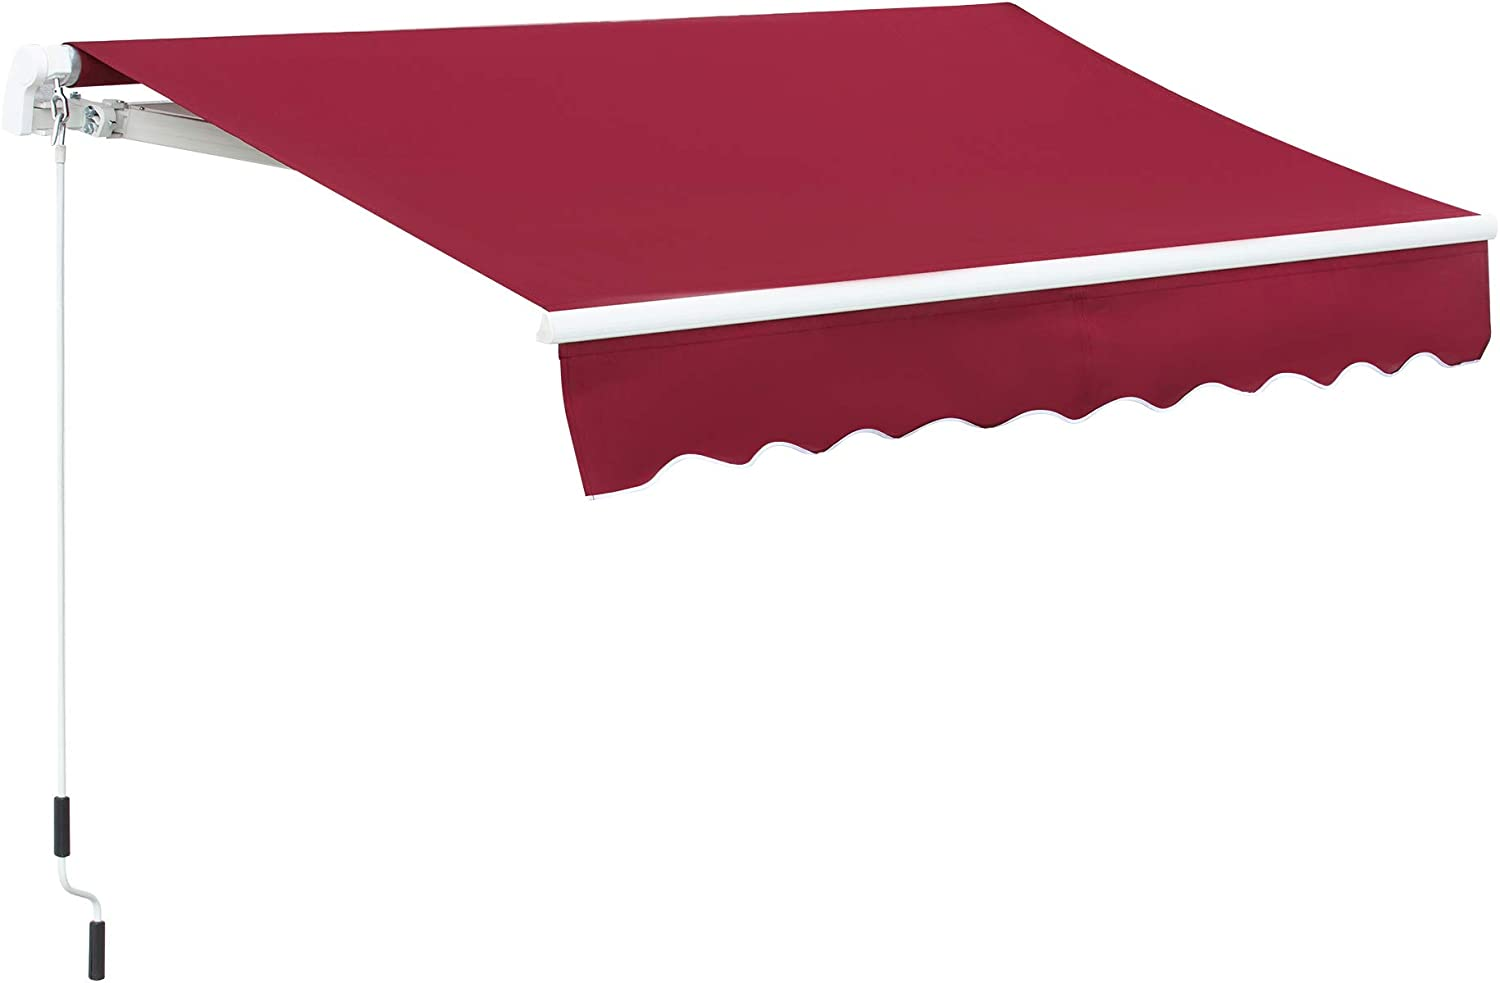 Outsunny 8' x 7' Patio Retractable Awning/Manual Exterior Sun Shade Deck Window Cover, Wine Red